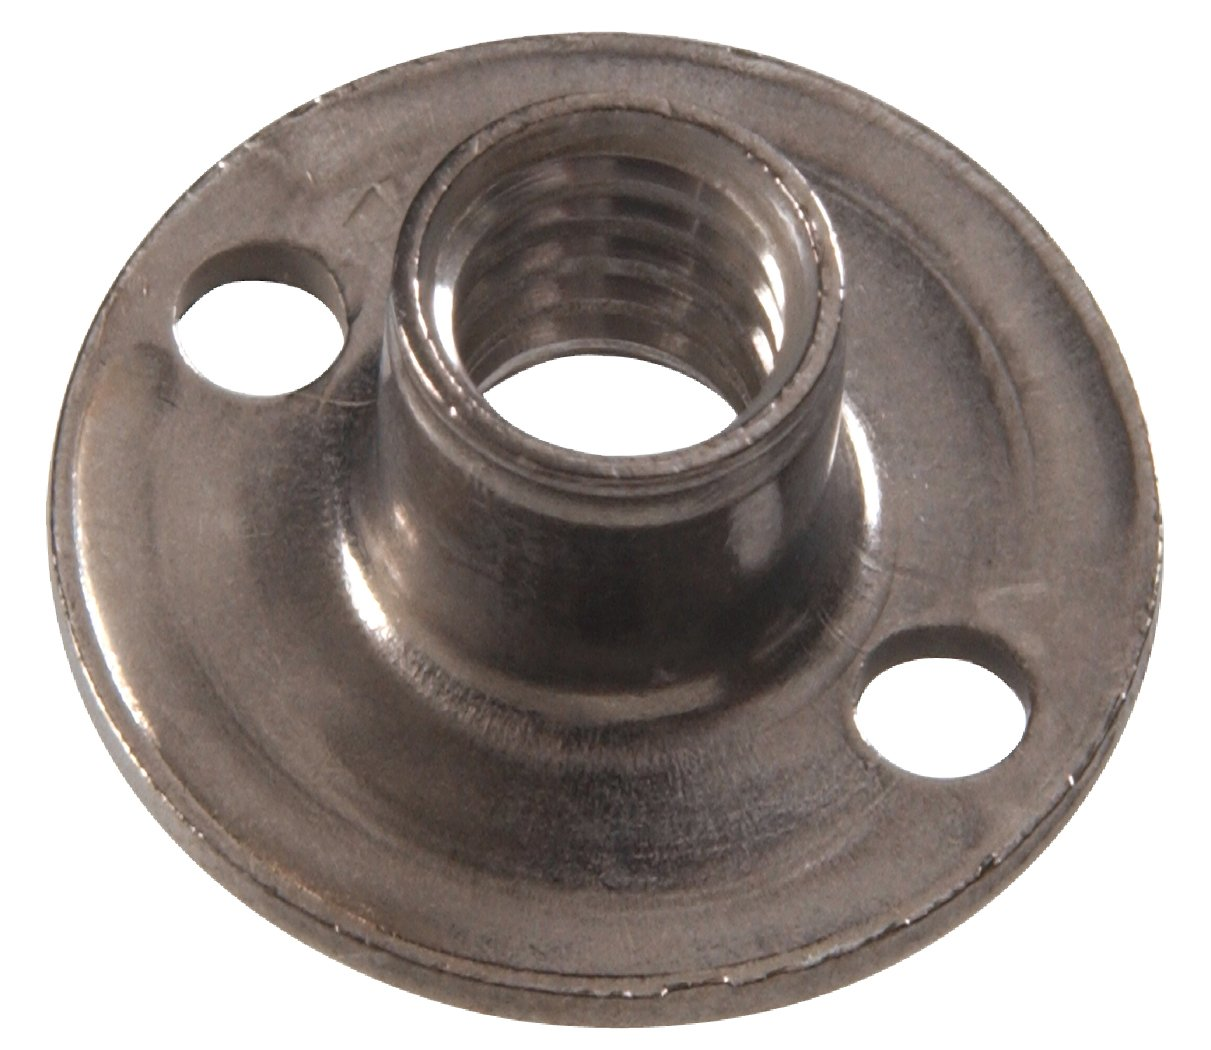 The Hillman Group The Hillman Group 4144 1/4-20 x 5/16 x 3/4 In. Stainless Steel Round Base Tee Nut (15-Pack)